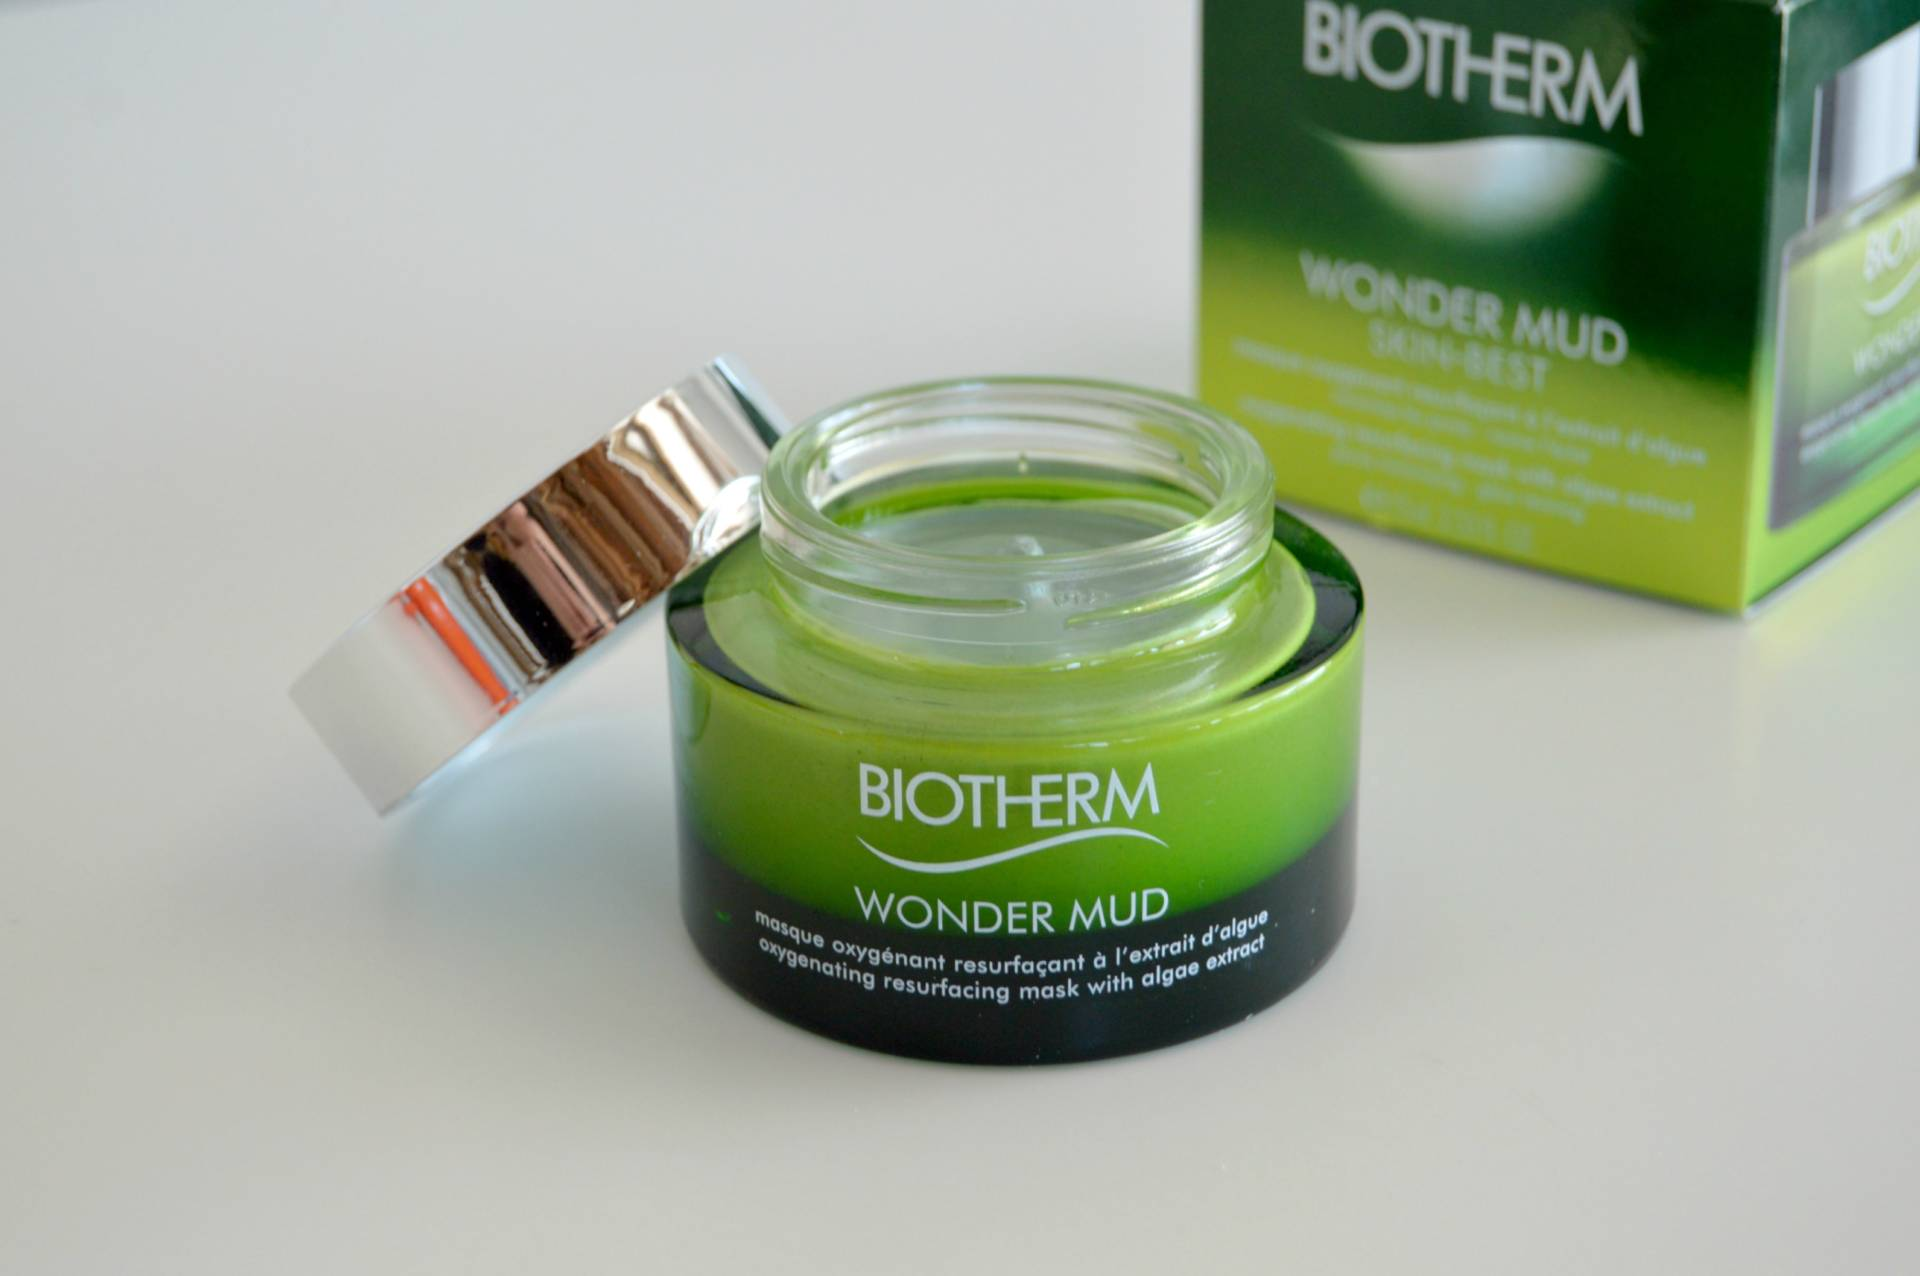 biotherm wonder mud masque review inhautepursuit